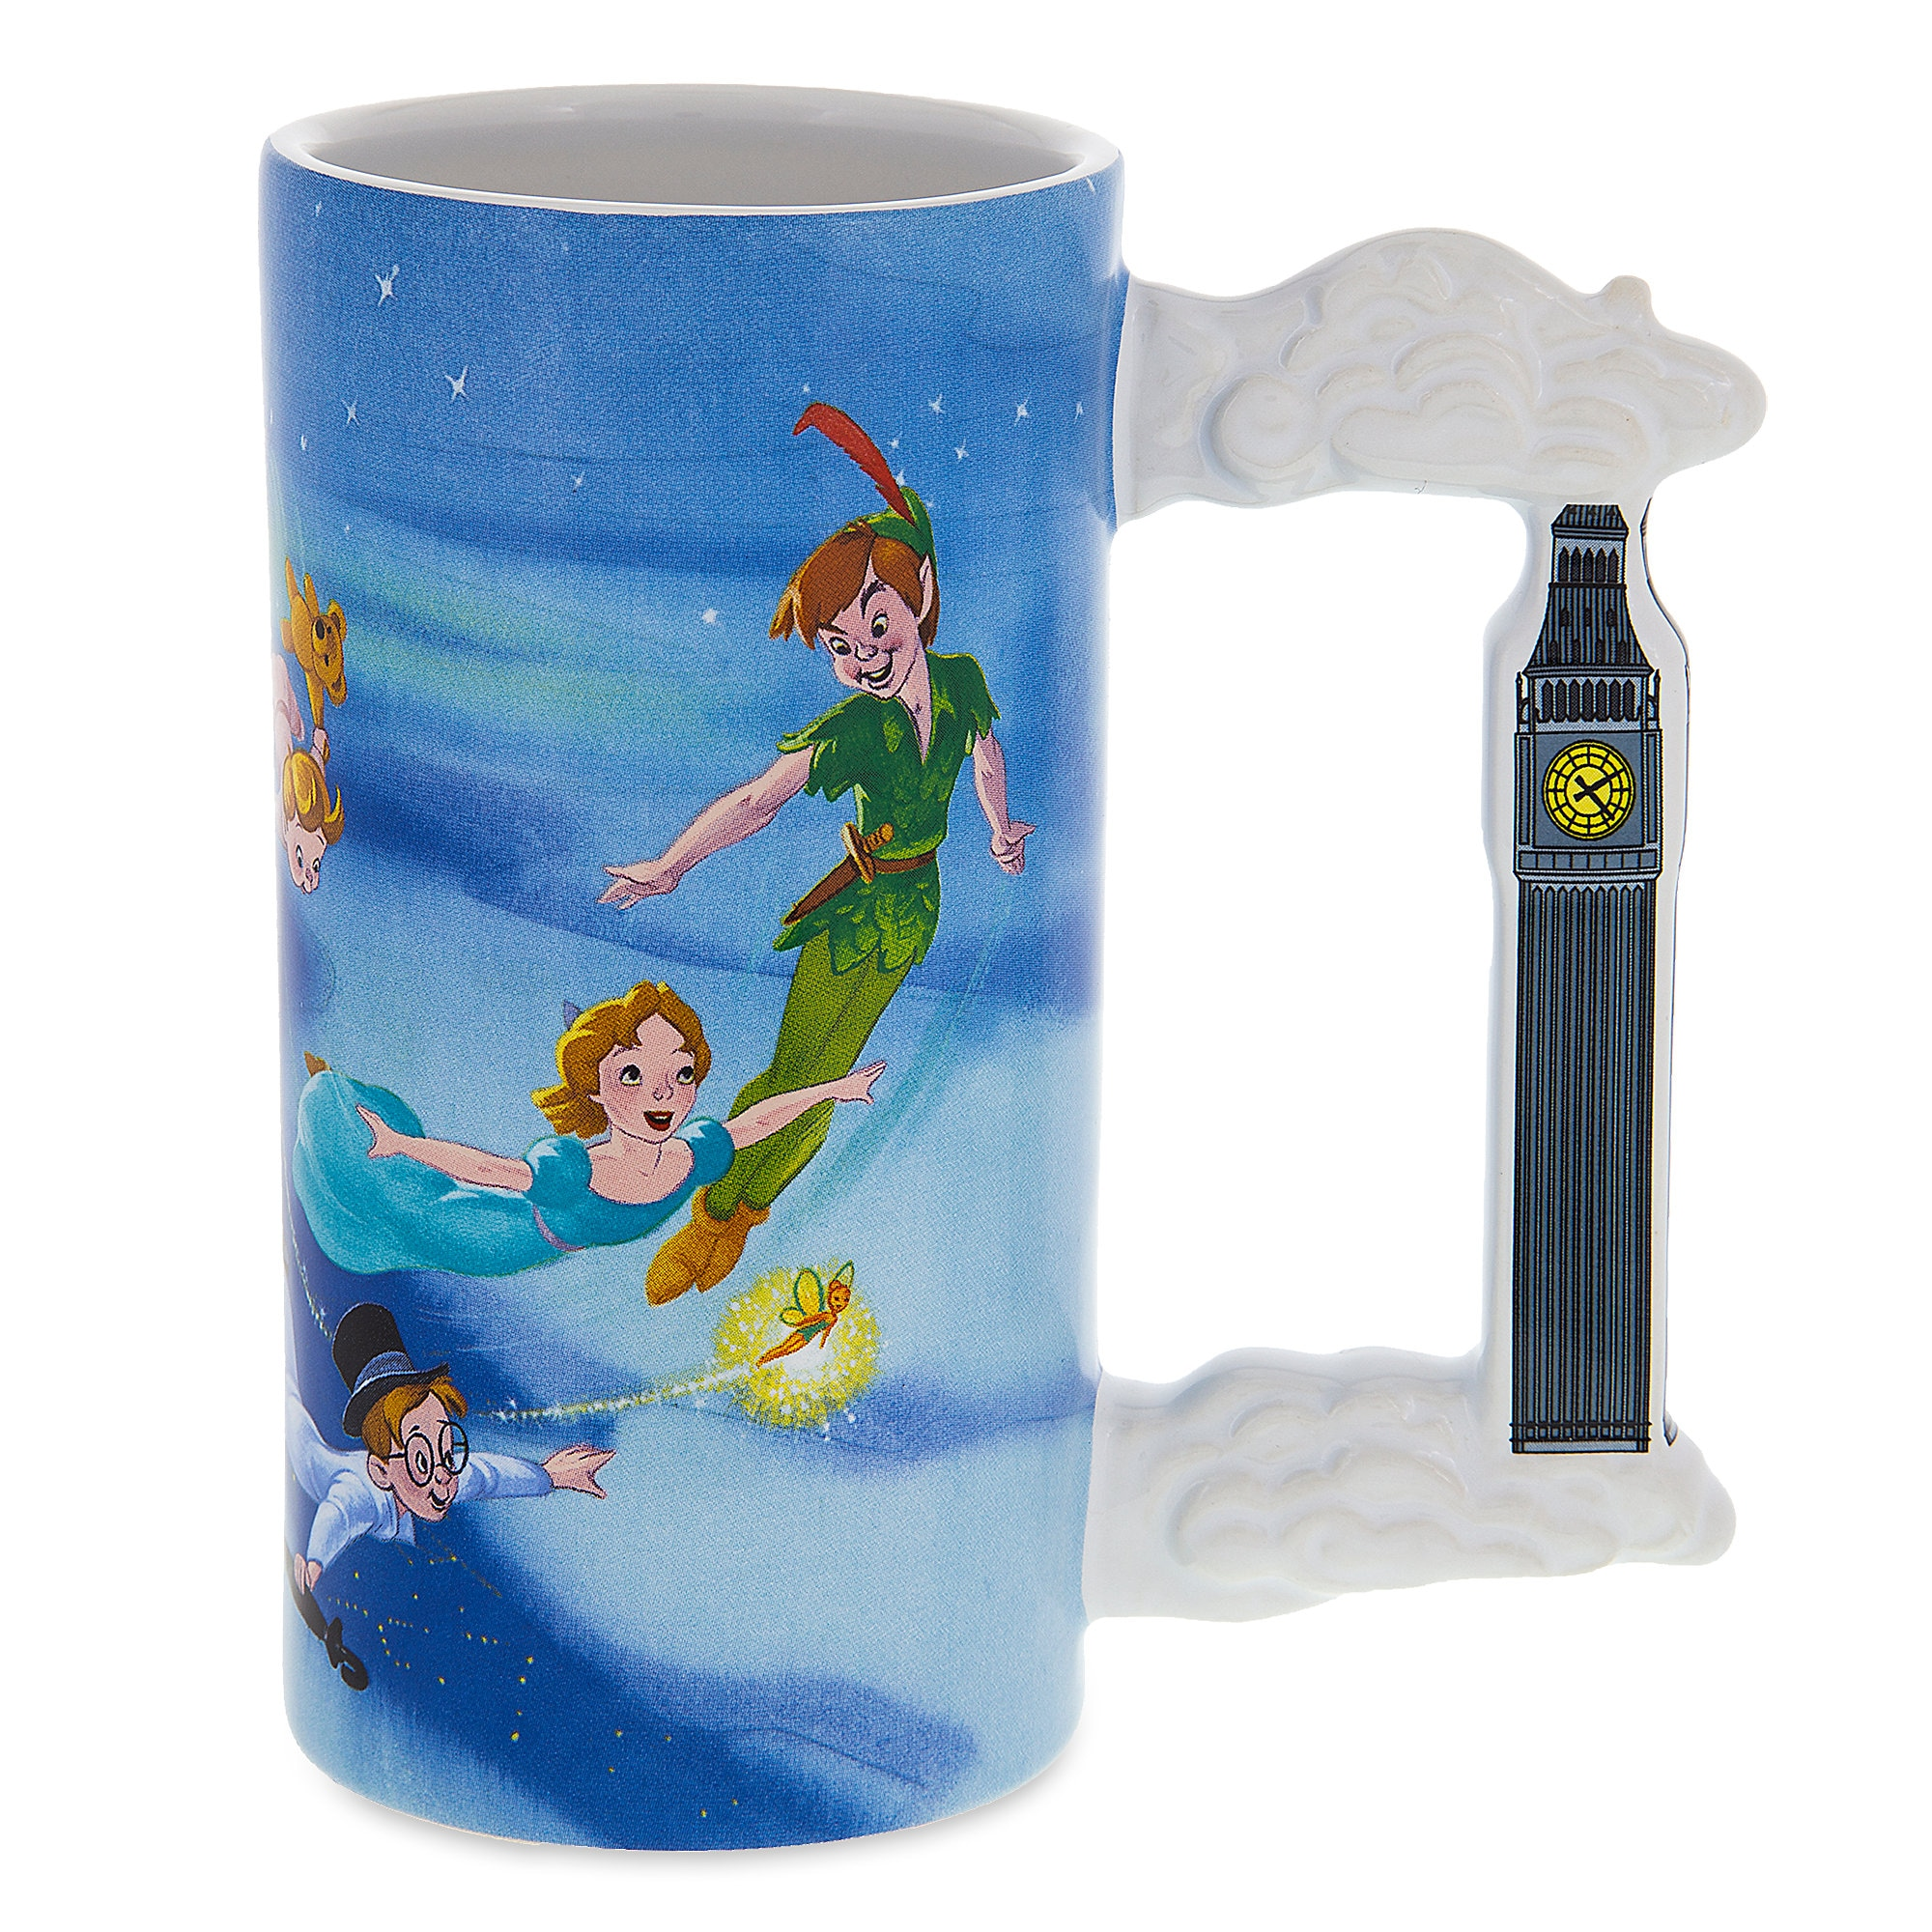 Peter Pan Tall Mug